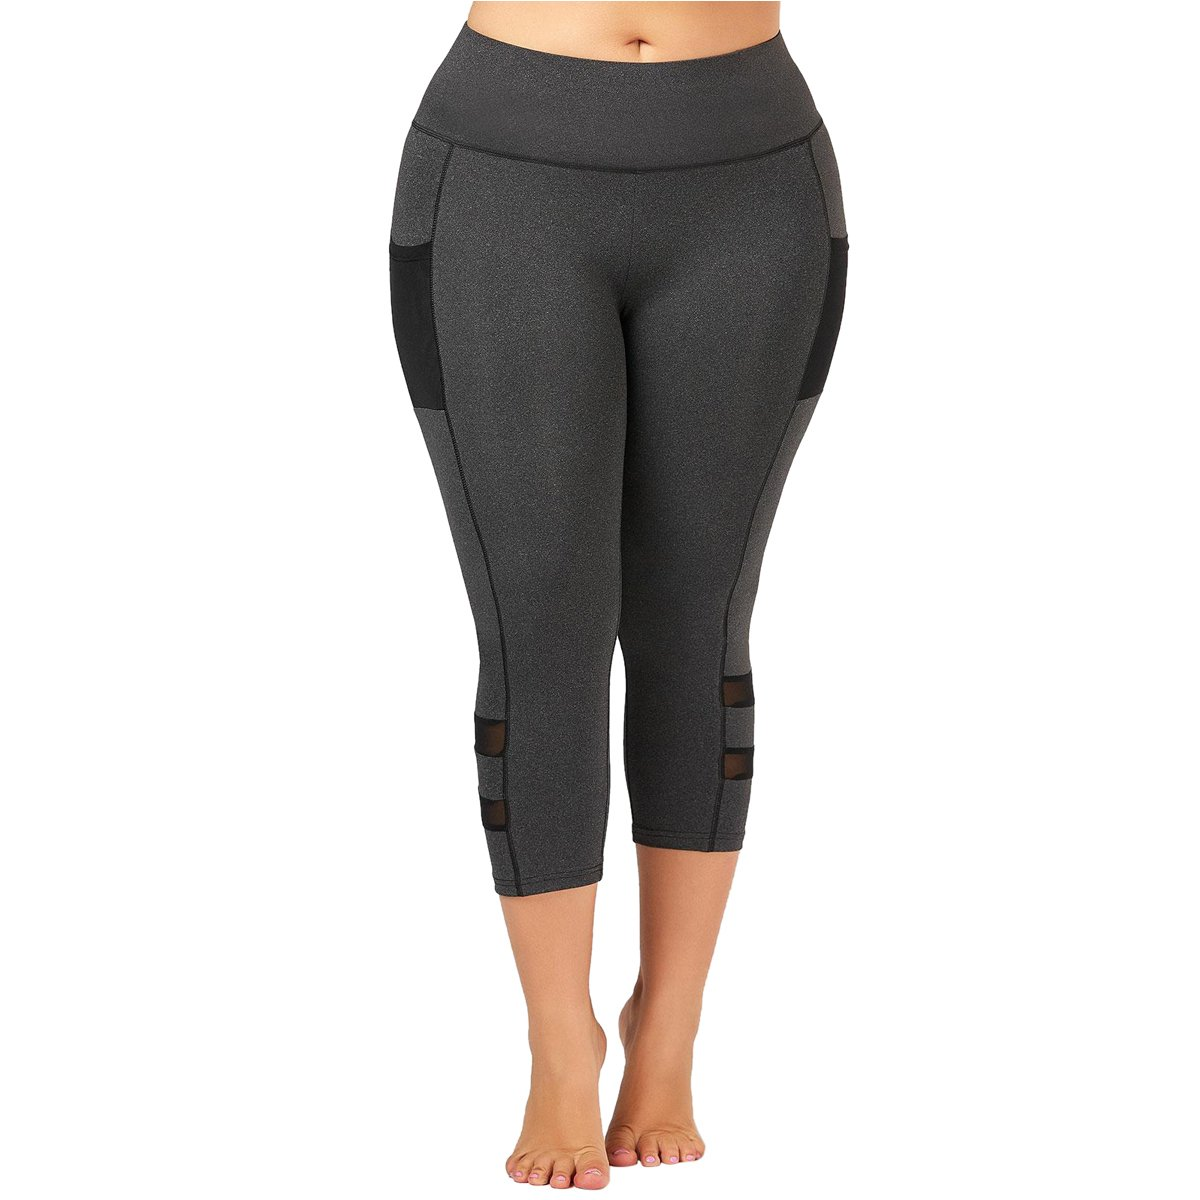 56324af2667 Yii ouneey Plus Size Leggings with Pocket for Women Yoga Pants High Waist  Fitness Workout Sports Tights Capris Leggings at Amazon Women s Clothing  store